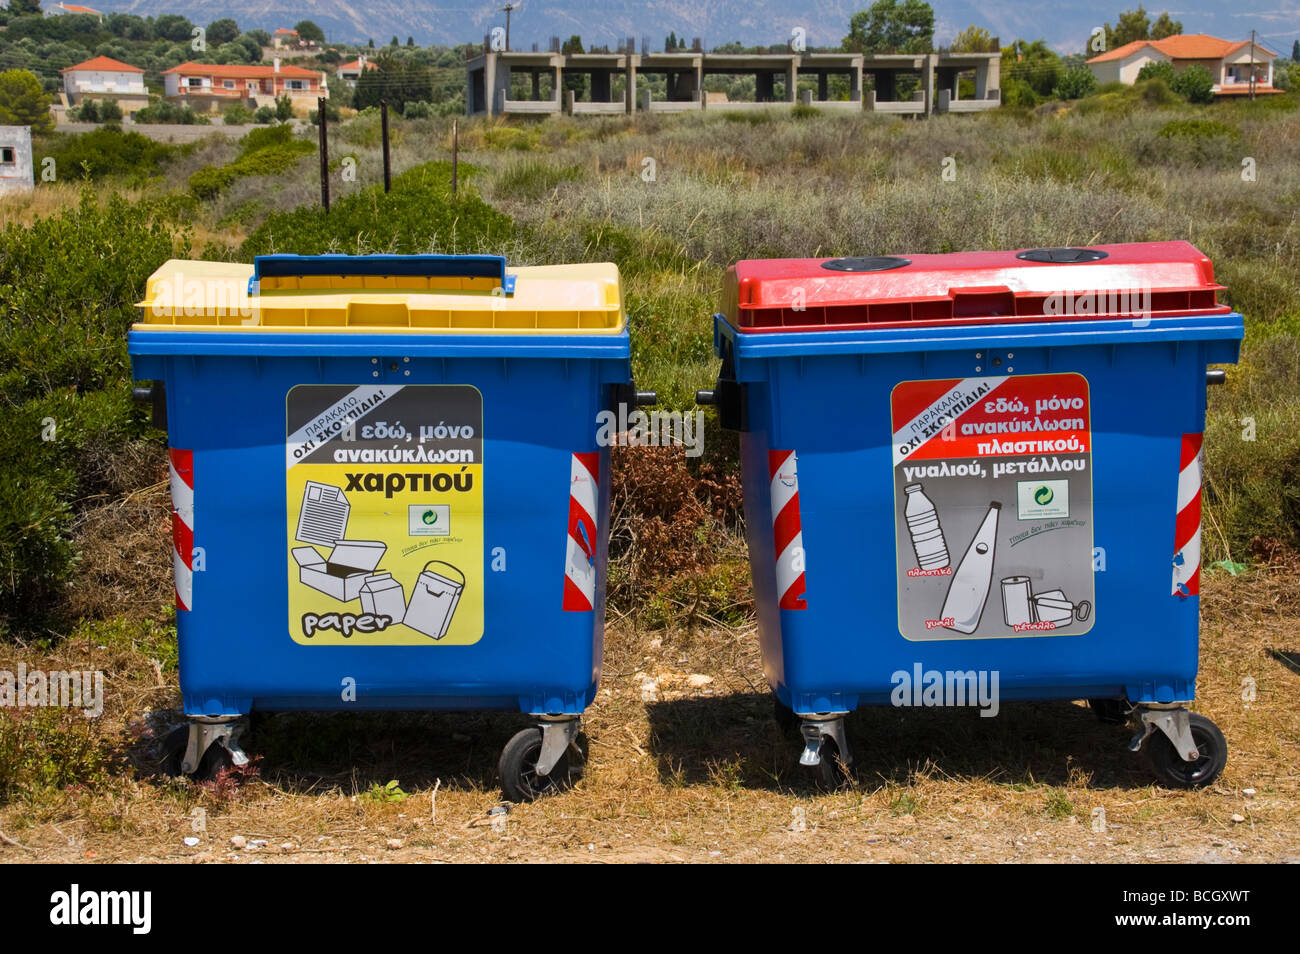 Large recycling bins for paper plastic and metal at Ammes beach on the Greek island of Kefalonia Greece GR Stock Photo